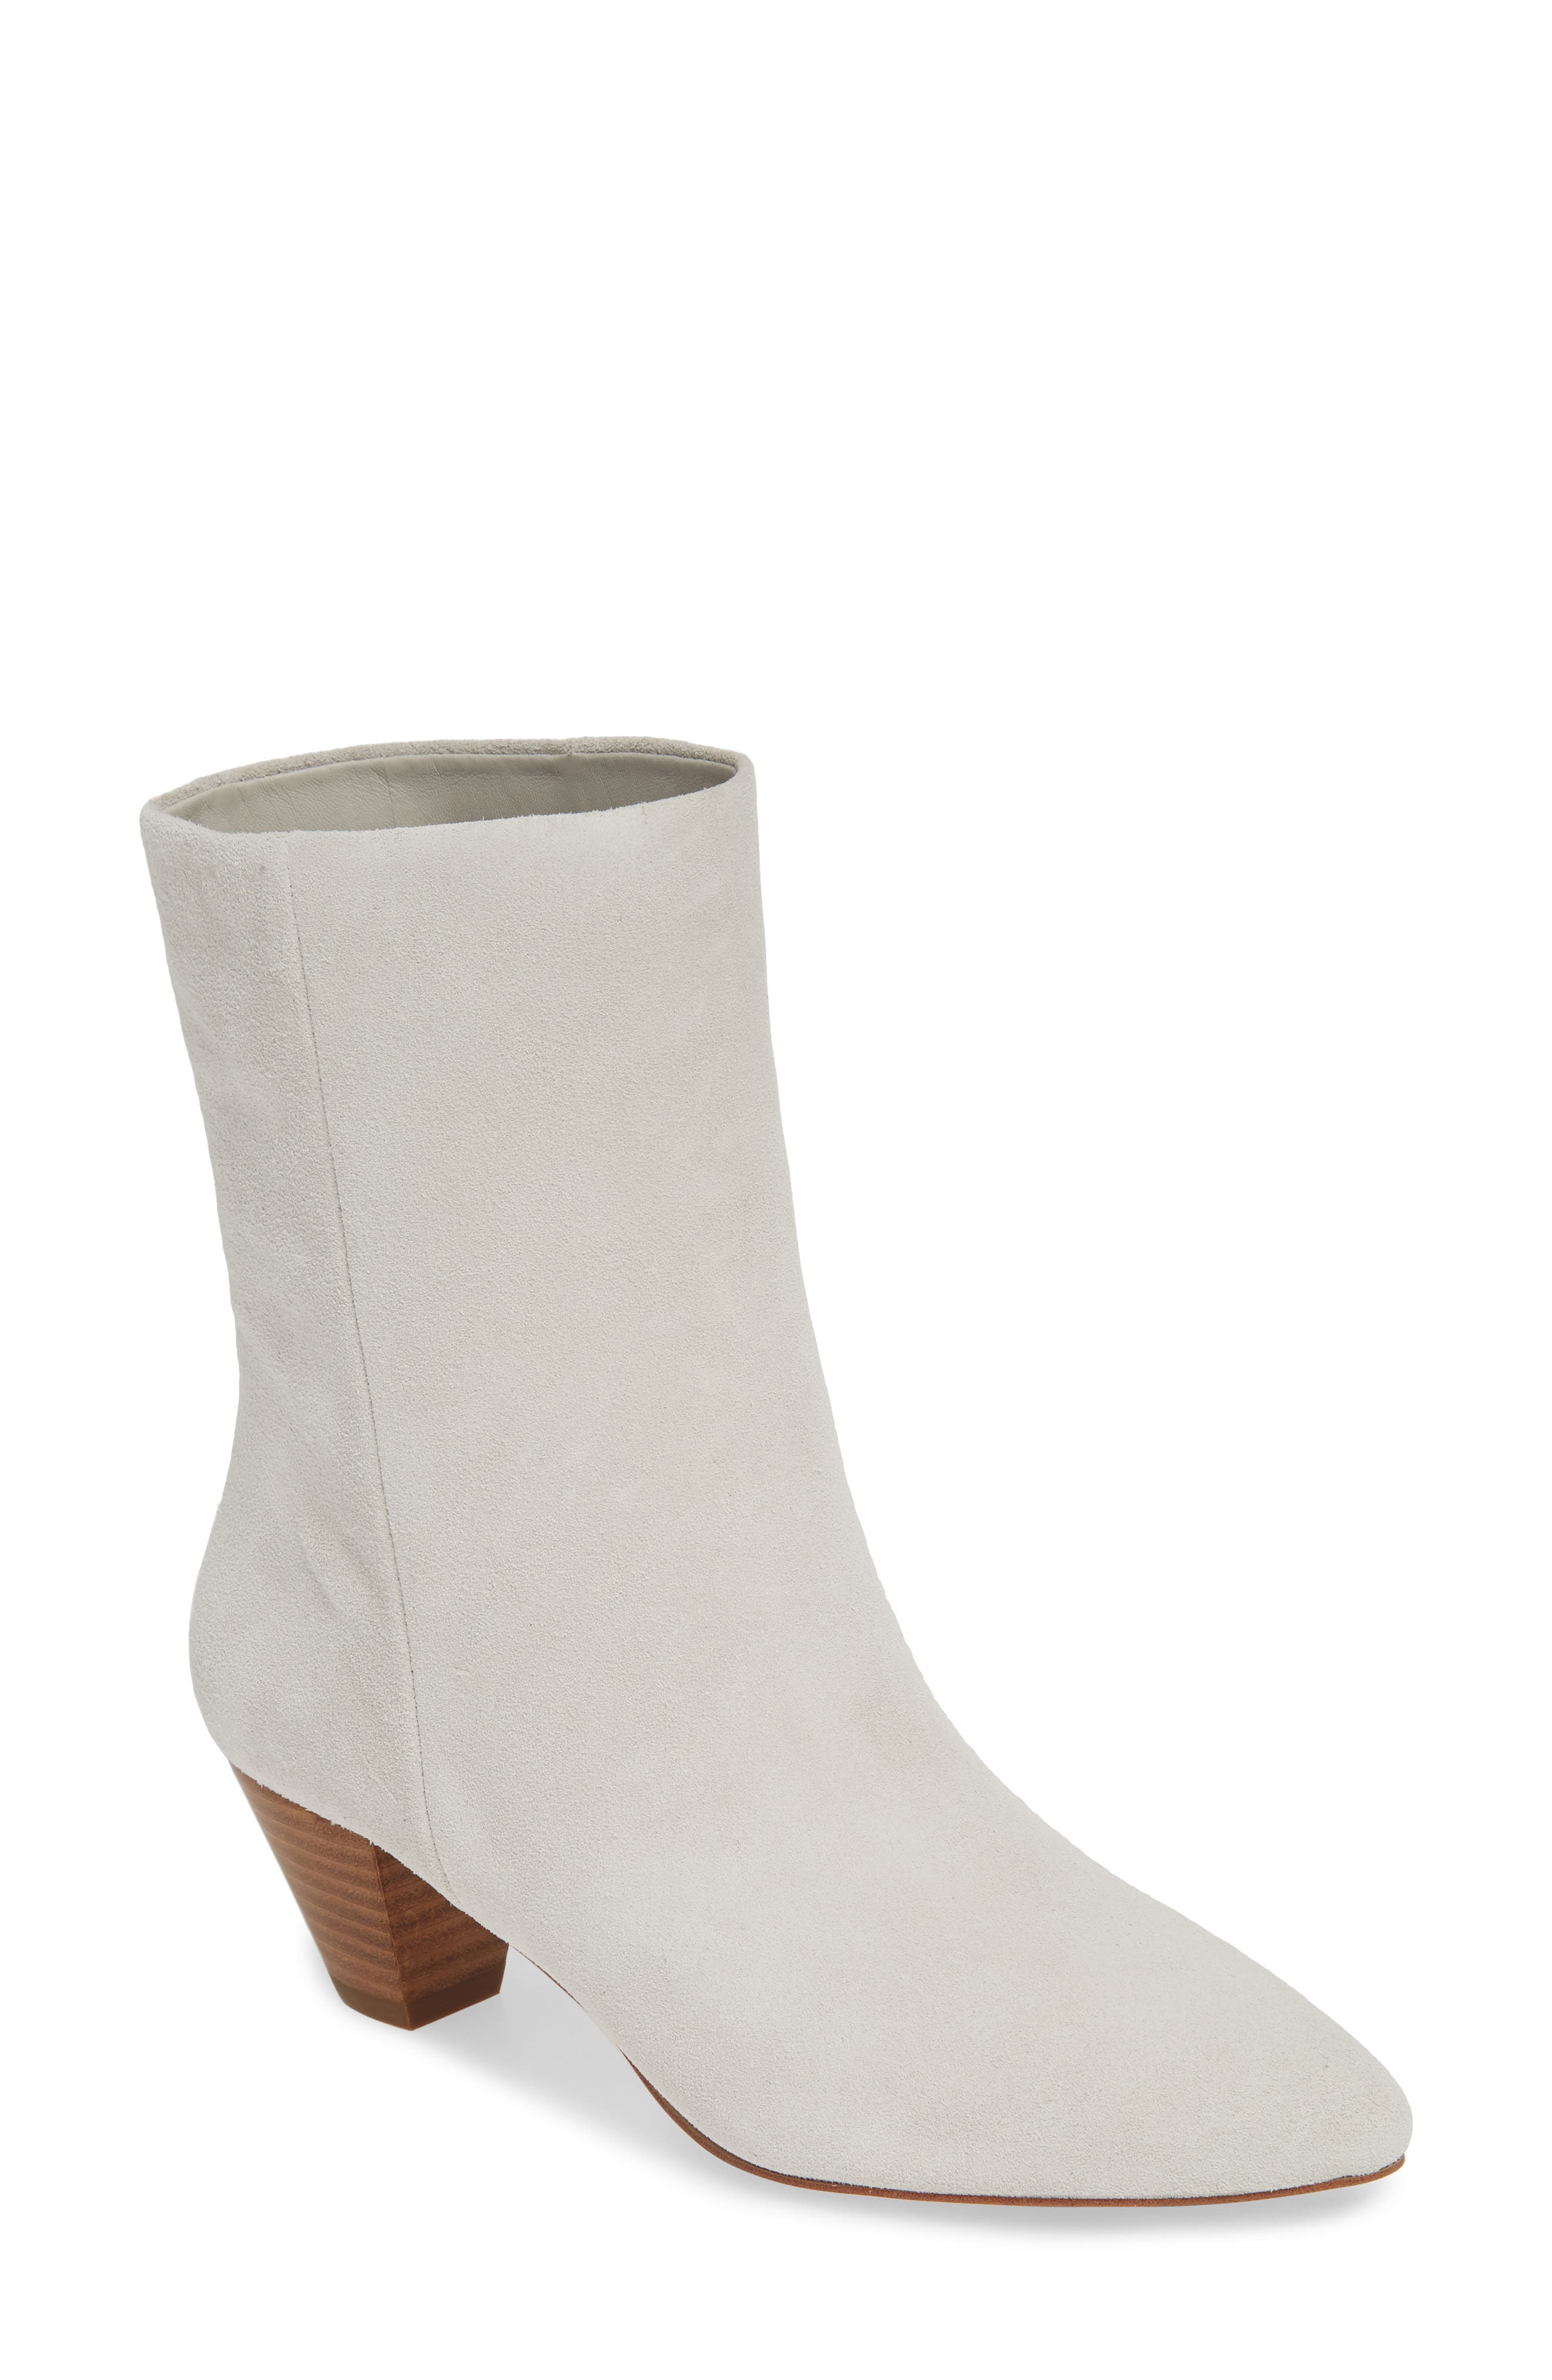 SOMETHING NAVY Milo Boot, Main, color, LIGHT GREY SUEDE